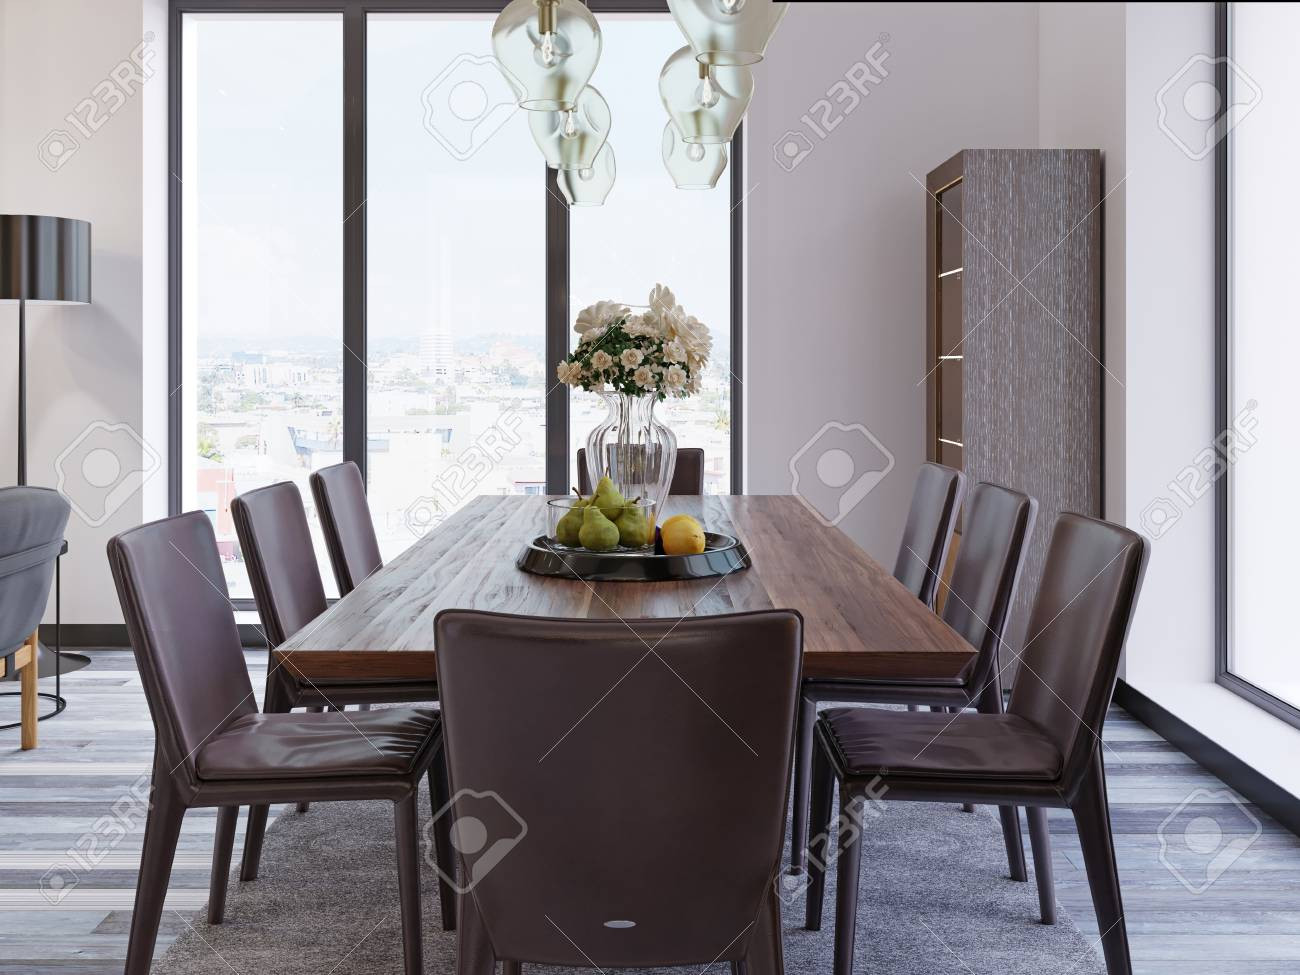 Panoramic Windows In Luxury Dining Room With Wooden Table And Leather Chairs Next To Showcase